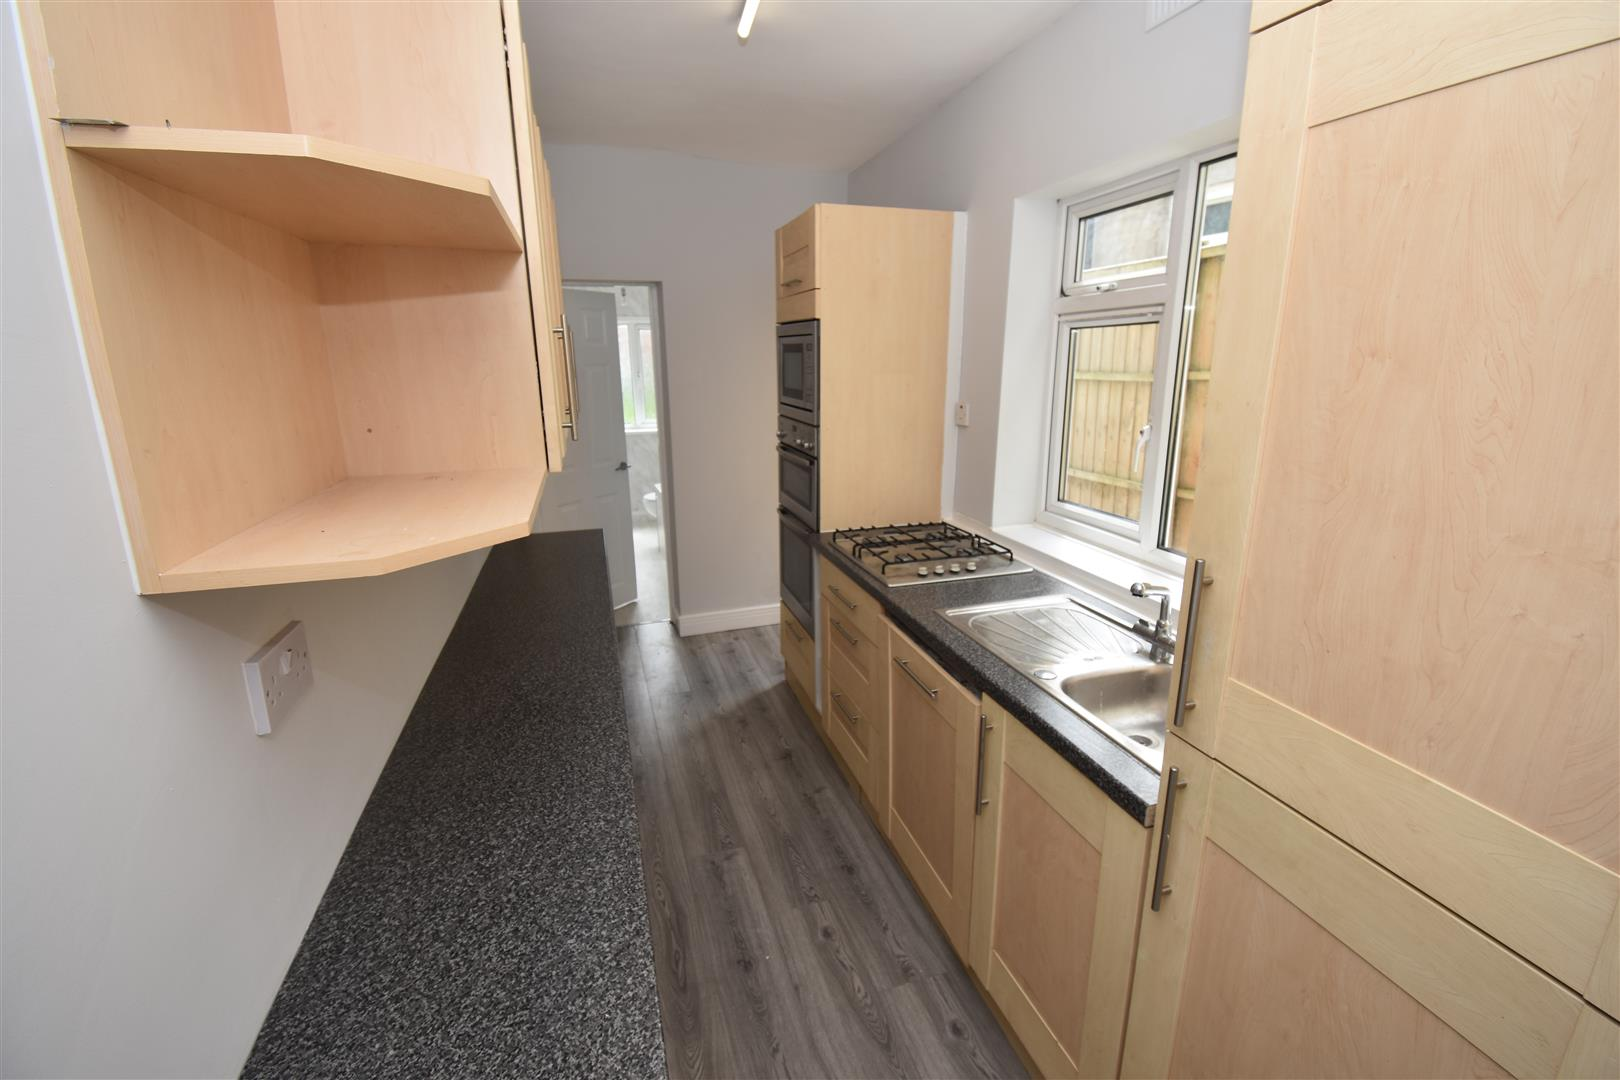 3 bed house for sale in Asquith Road, Ward End, Birmingham 5